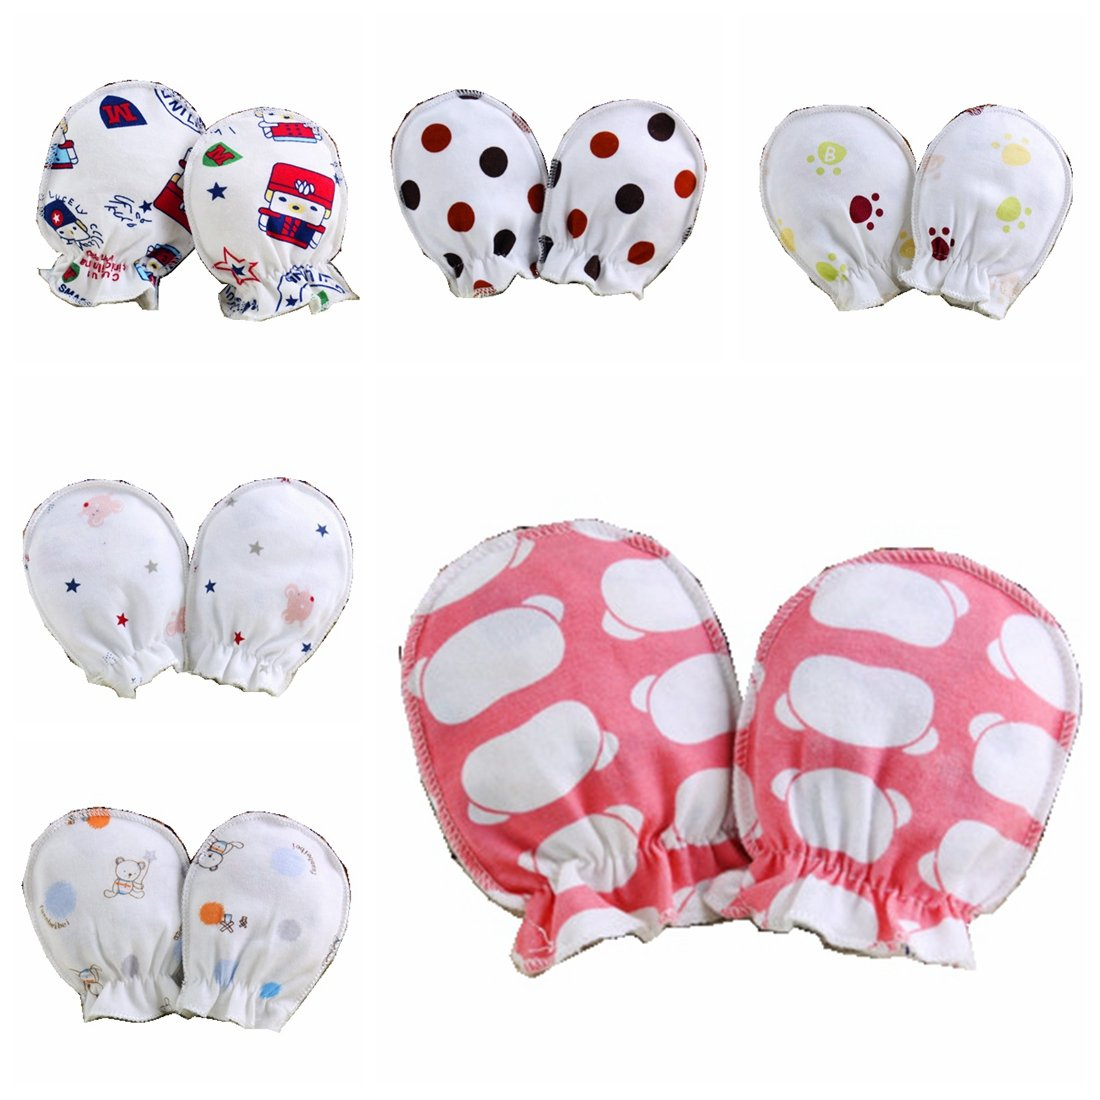 10Pairs Newborn Infant Soft Cotton Boy Girl Handguard Anti Scratch Mitten Gloves